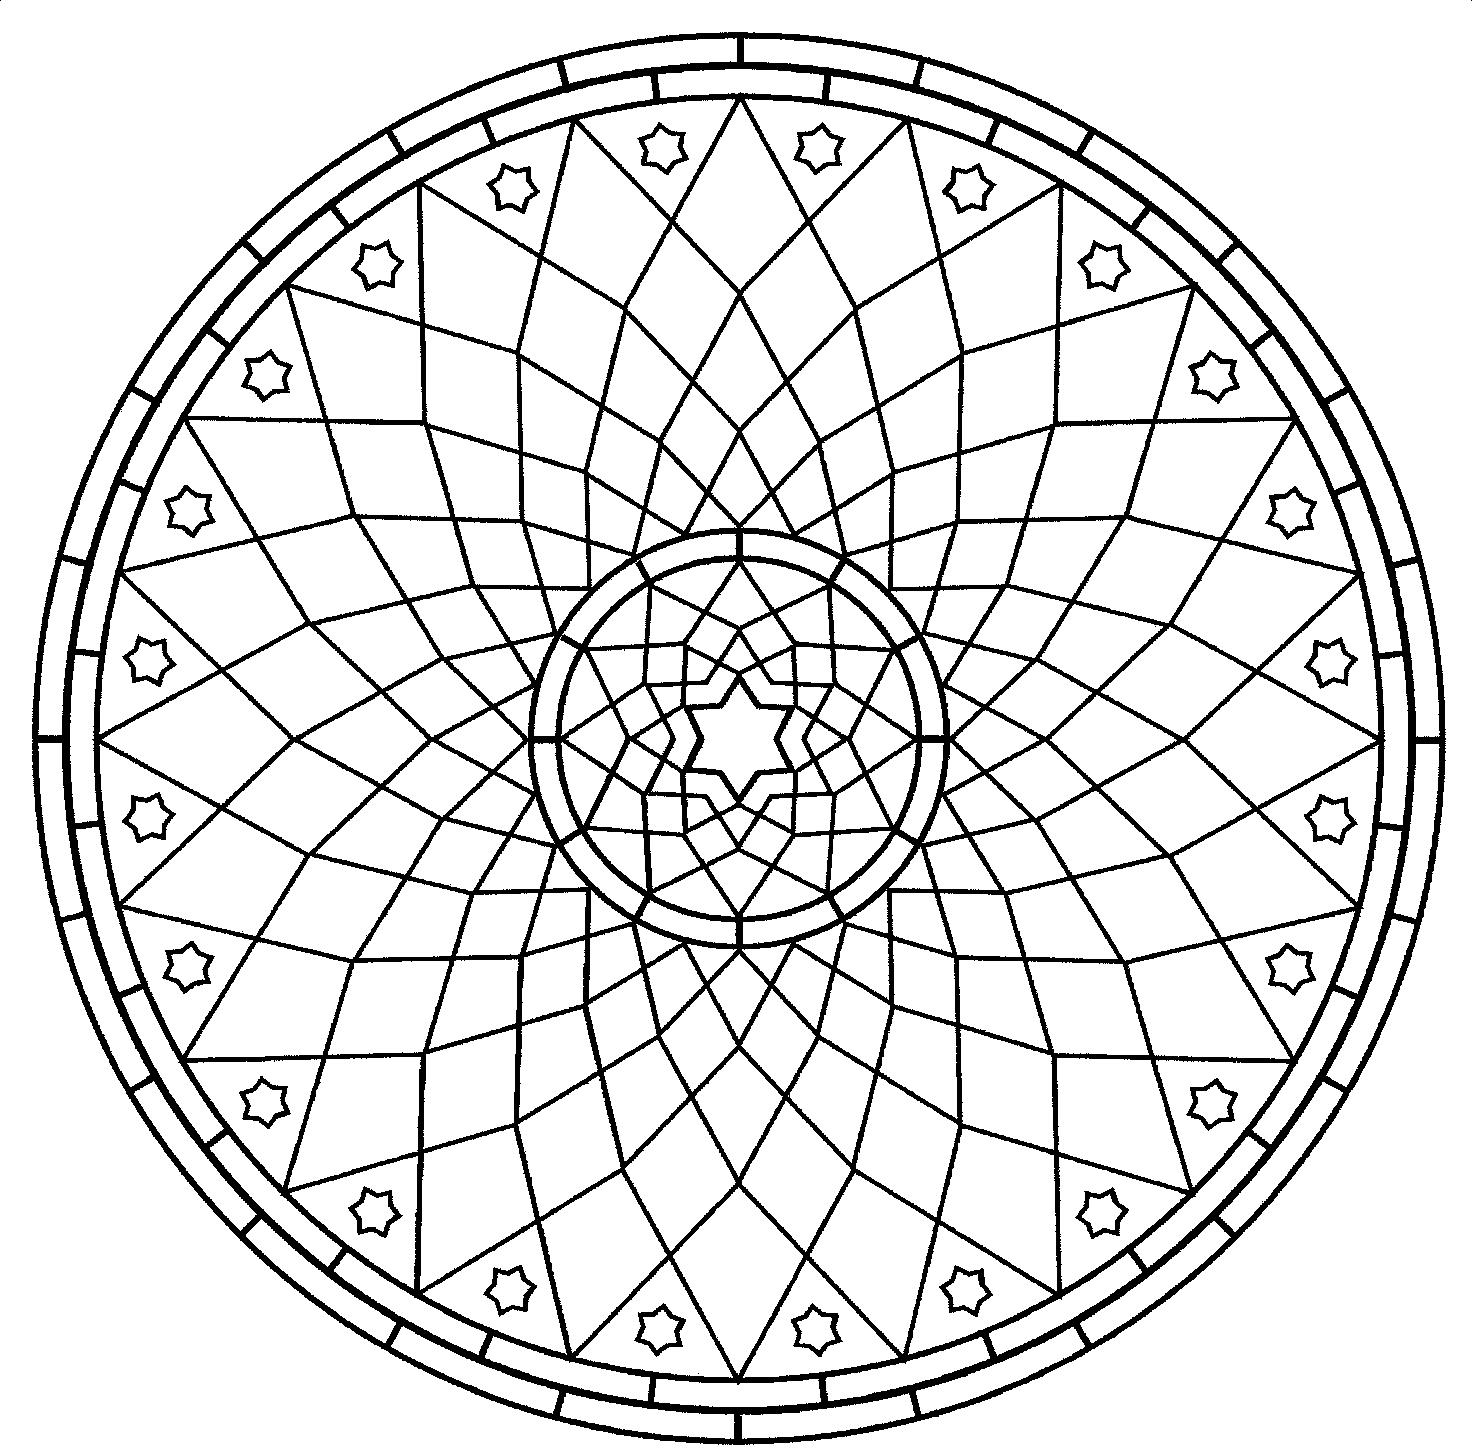 Colouring in pages mandala - Free Mandala Coloring Pages For Kids